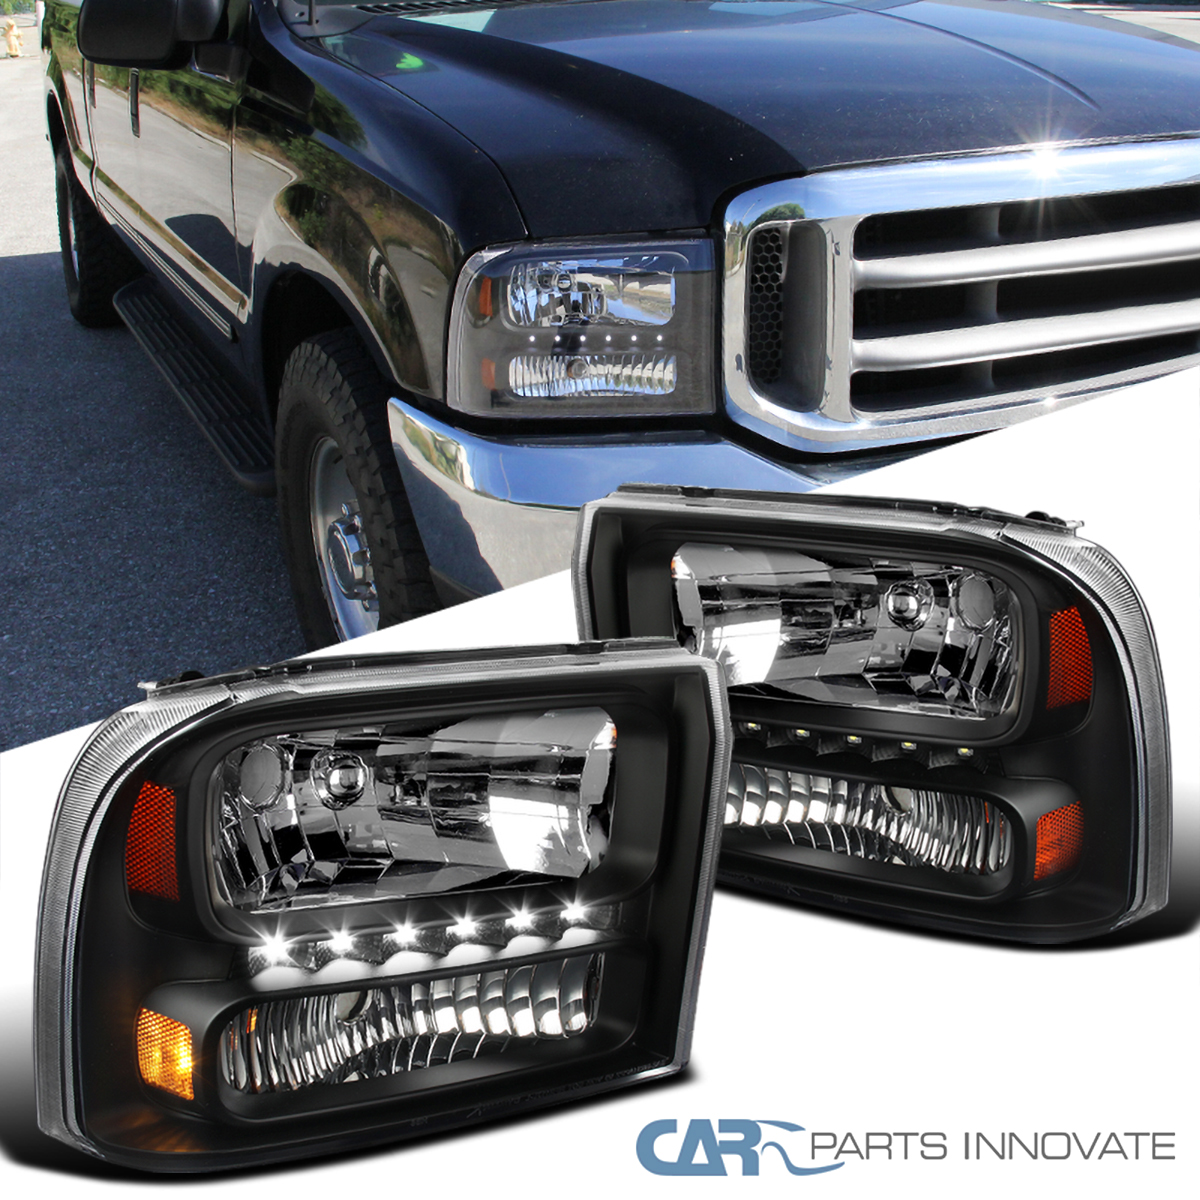 99 F350 Headlights >> Details About For Ford 99 04 F250 F350 Superduty 00 04 Excursion Black 1pc Headlights Smd Led